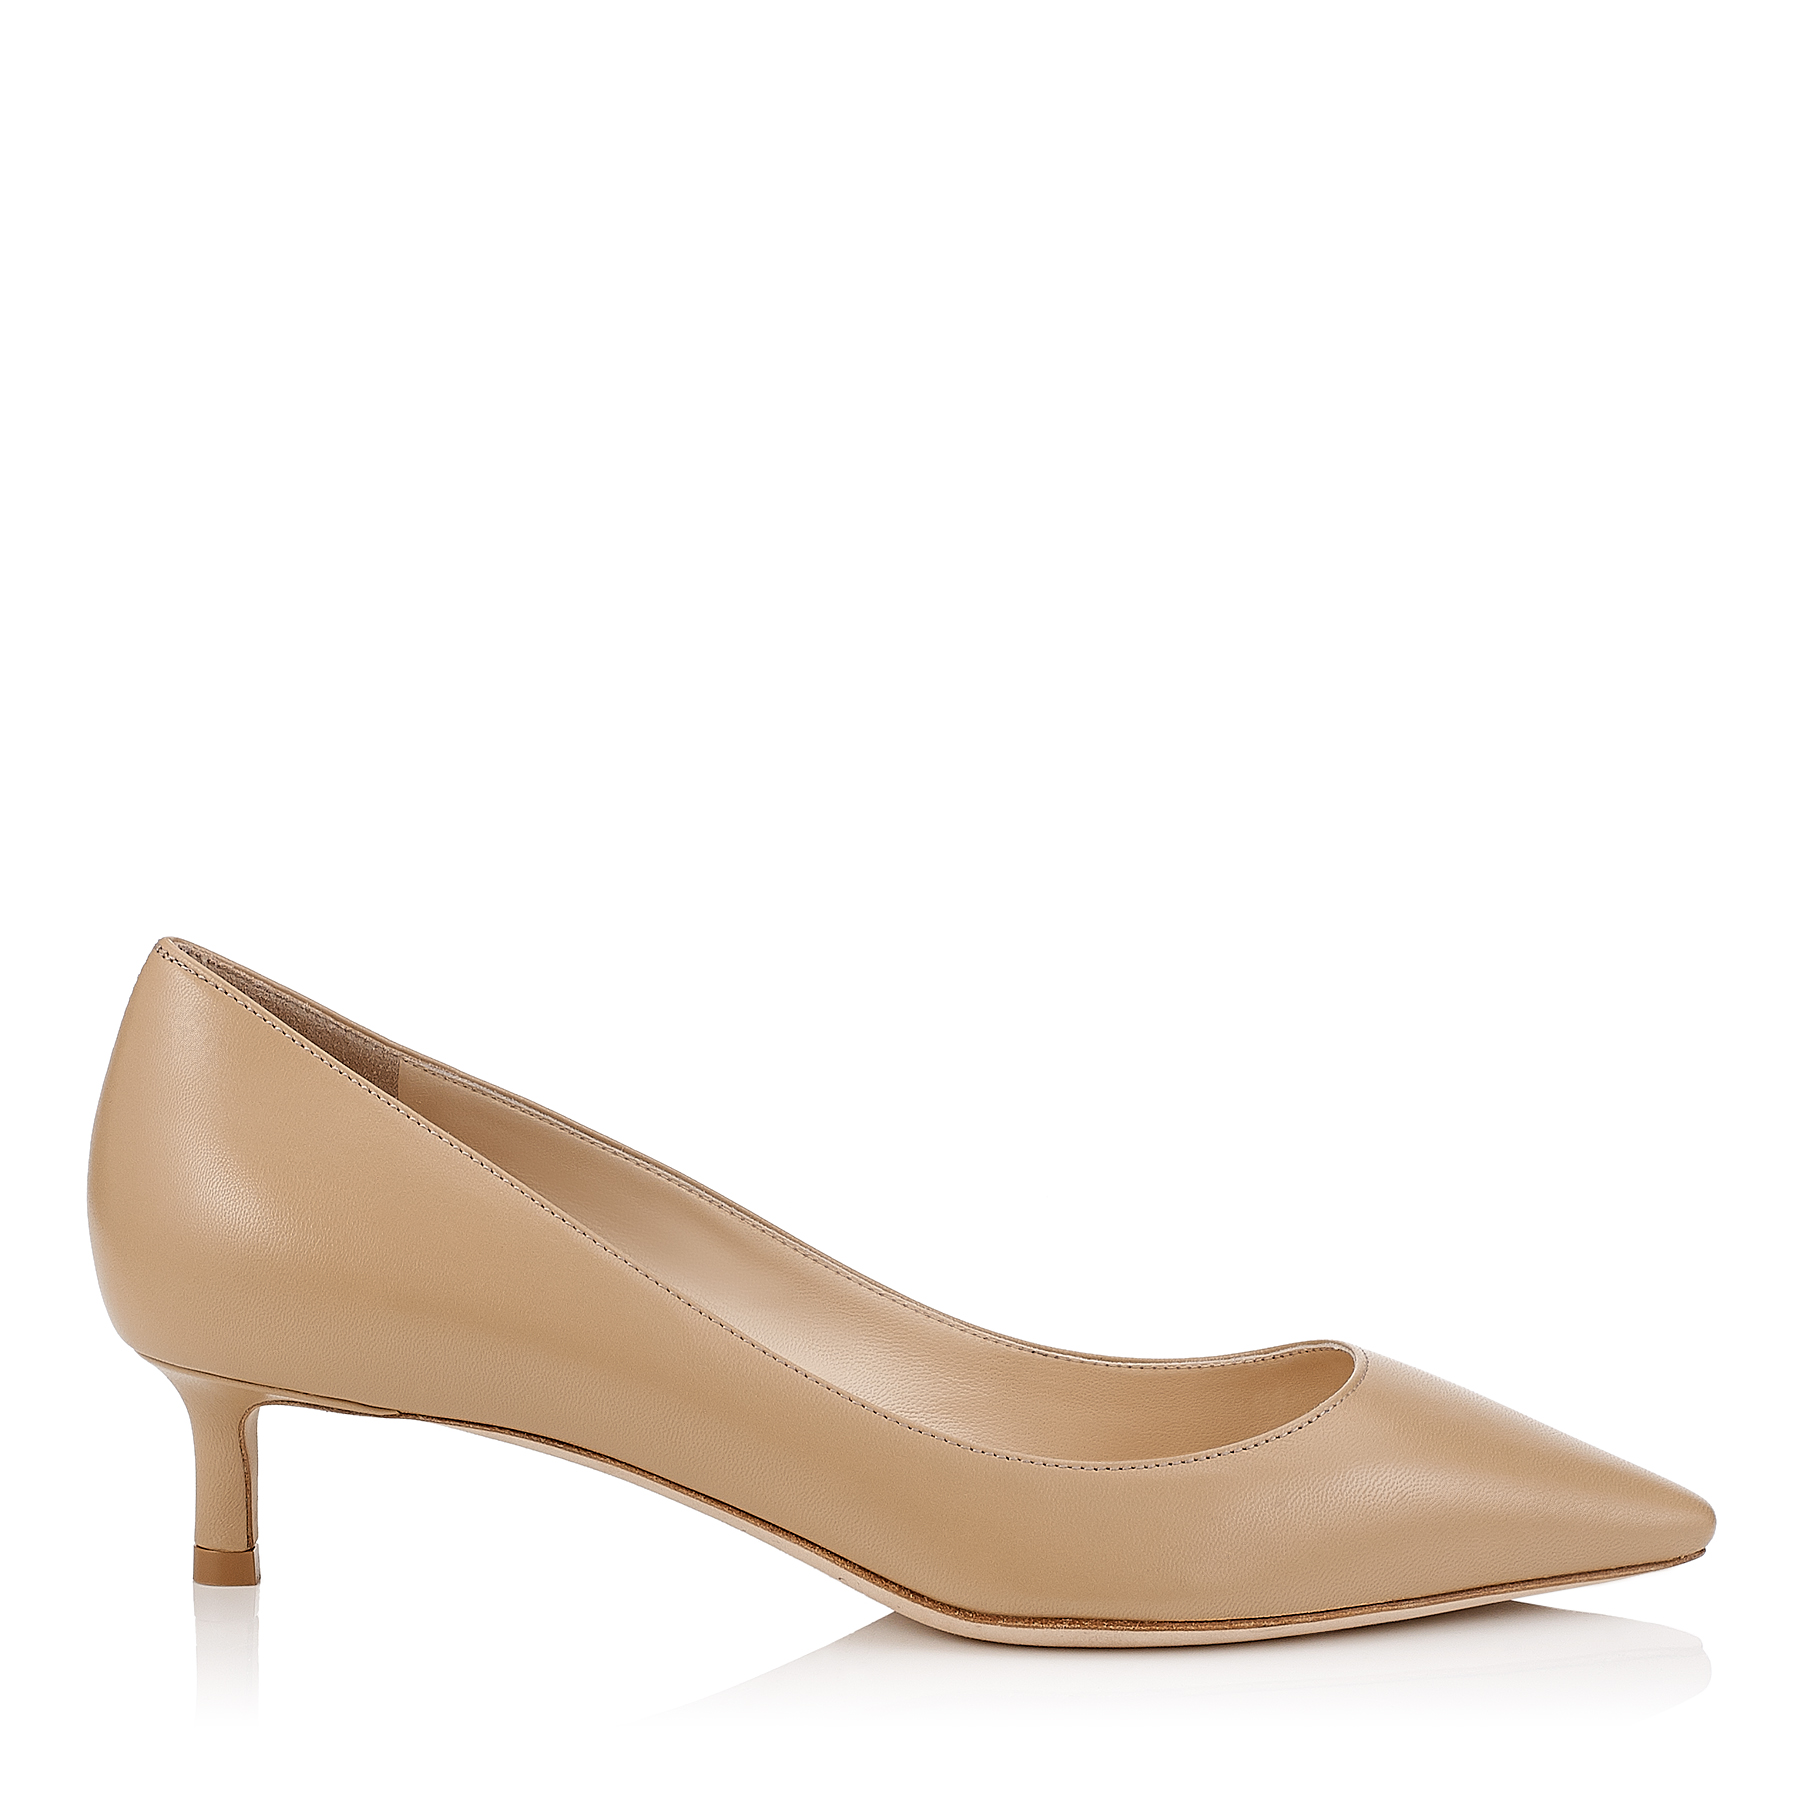 ROMY 40 Nude Kid Leather Pointy Toe Pumps